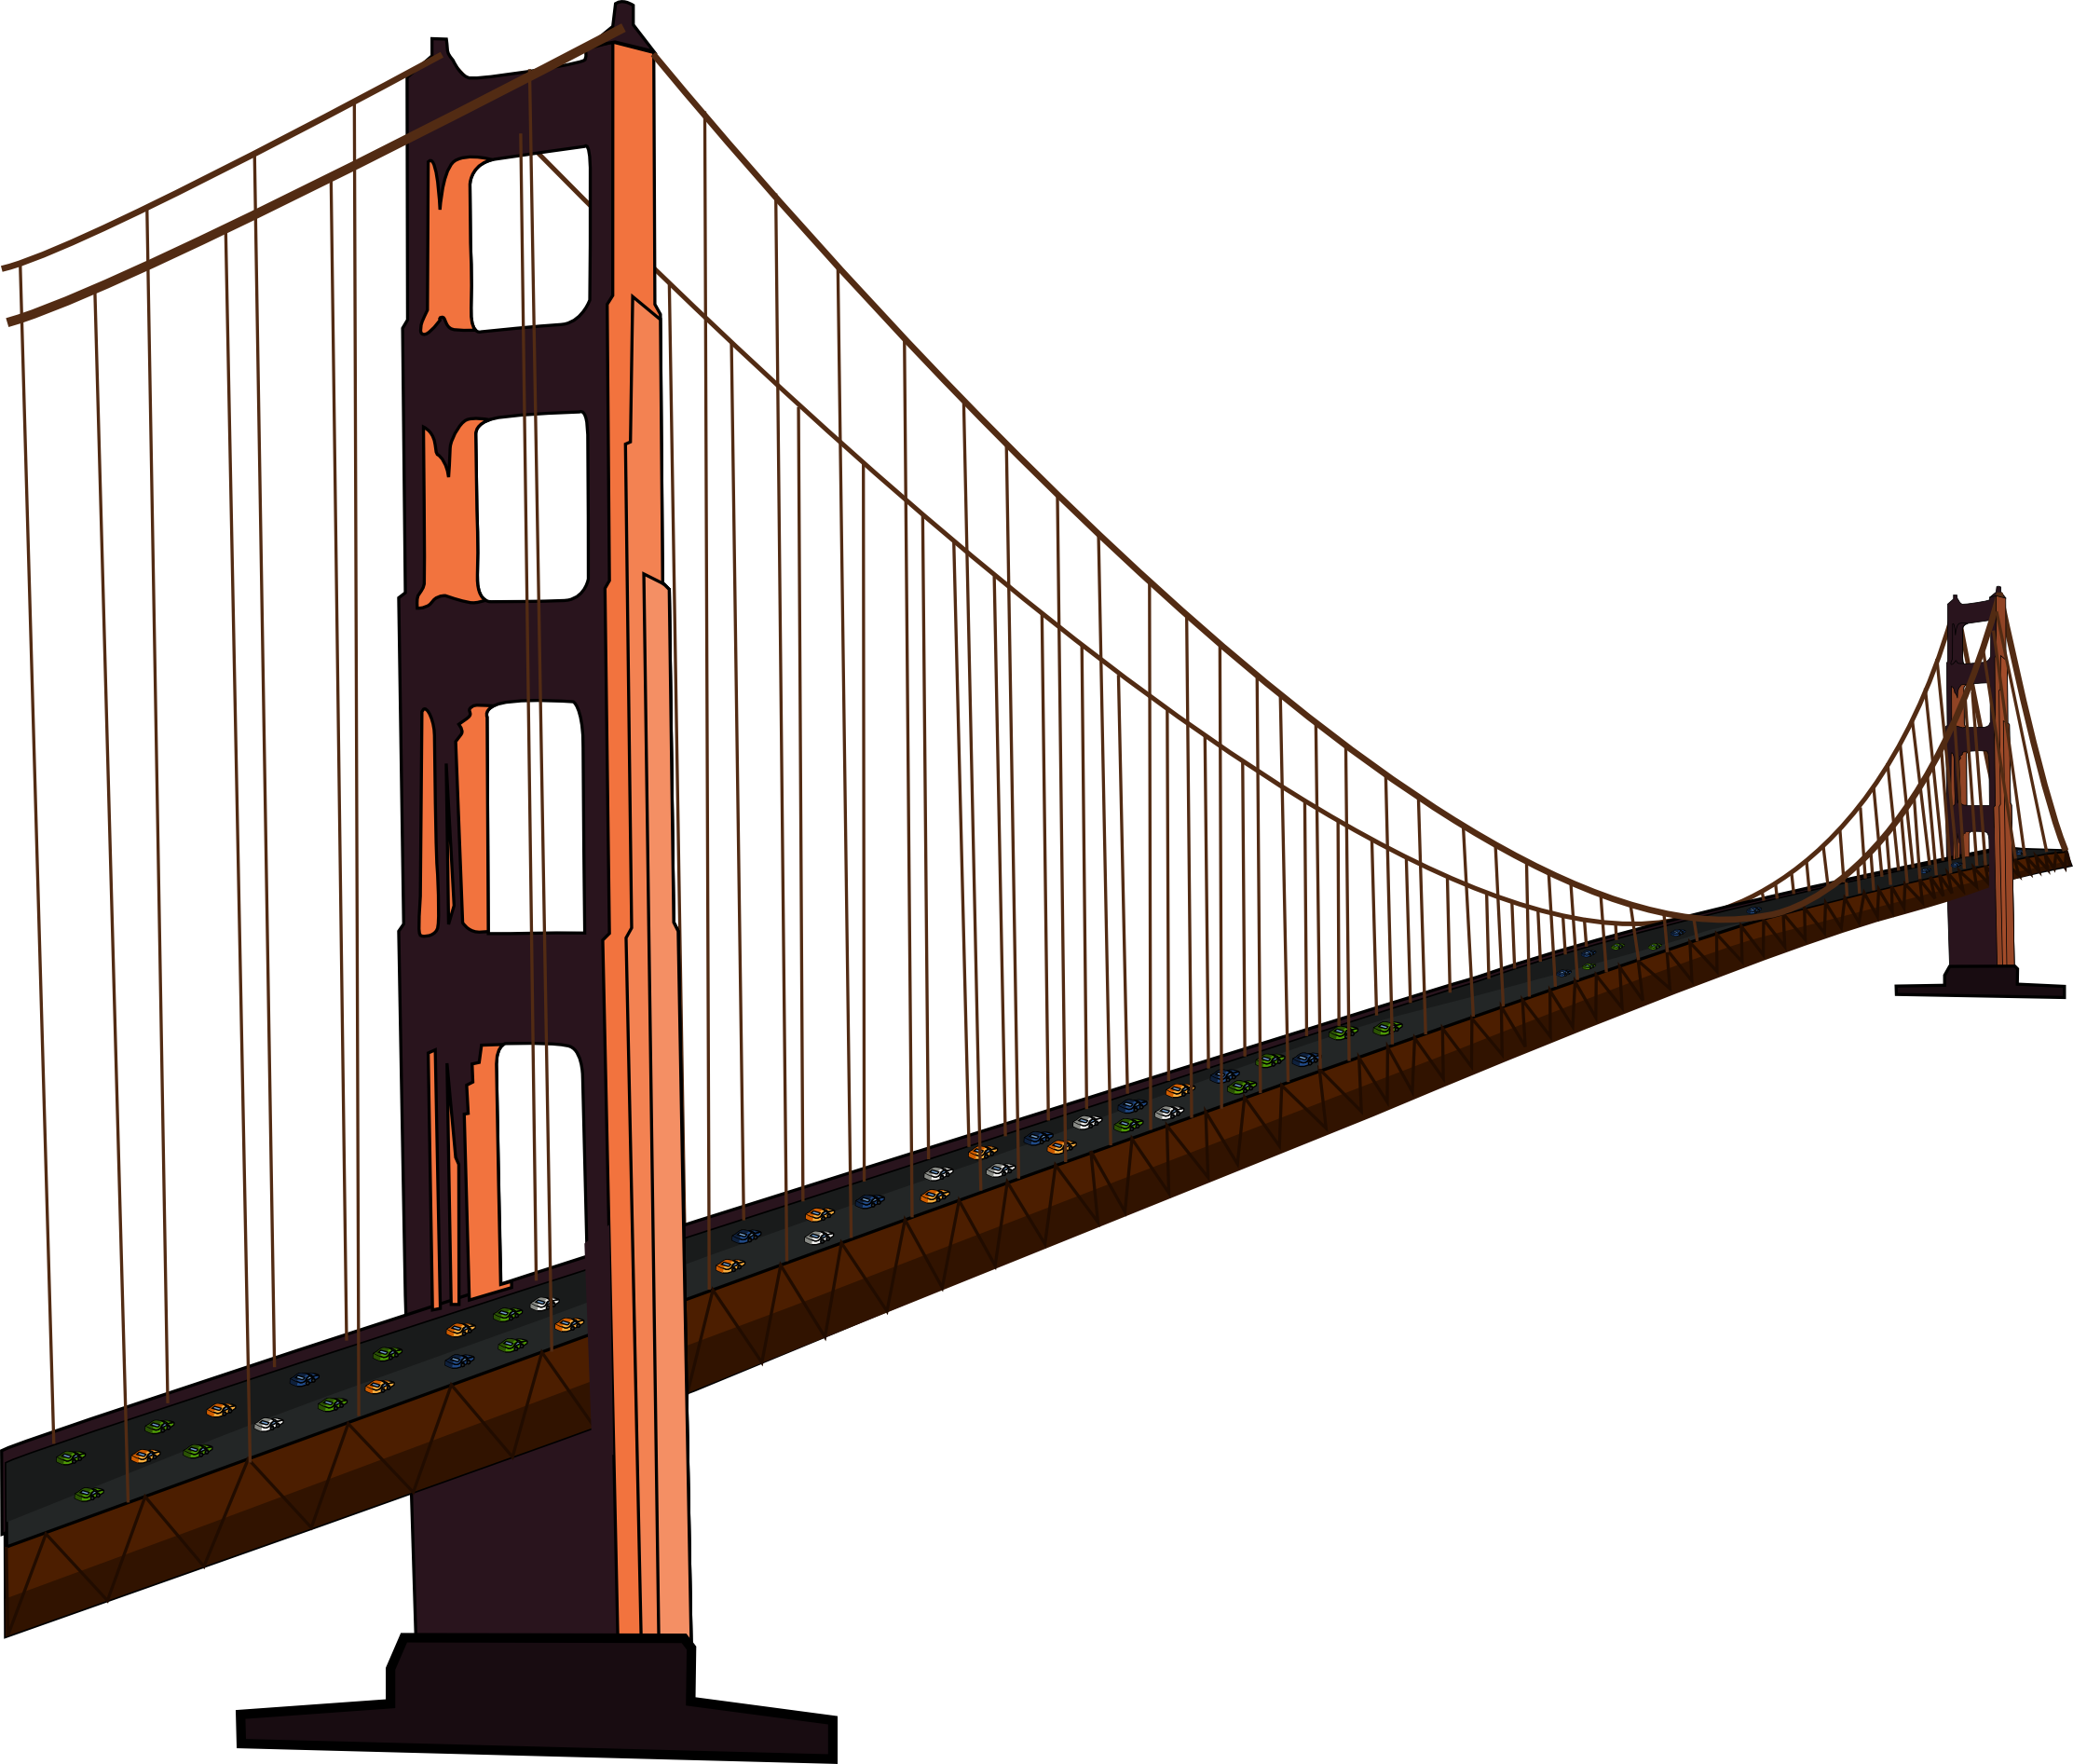 golden gate bridge drawing clip art at getdrawings com free for rh getdrawings com bridge clipart black and white bridge clip art free images